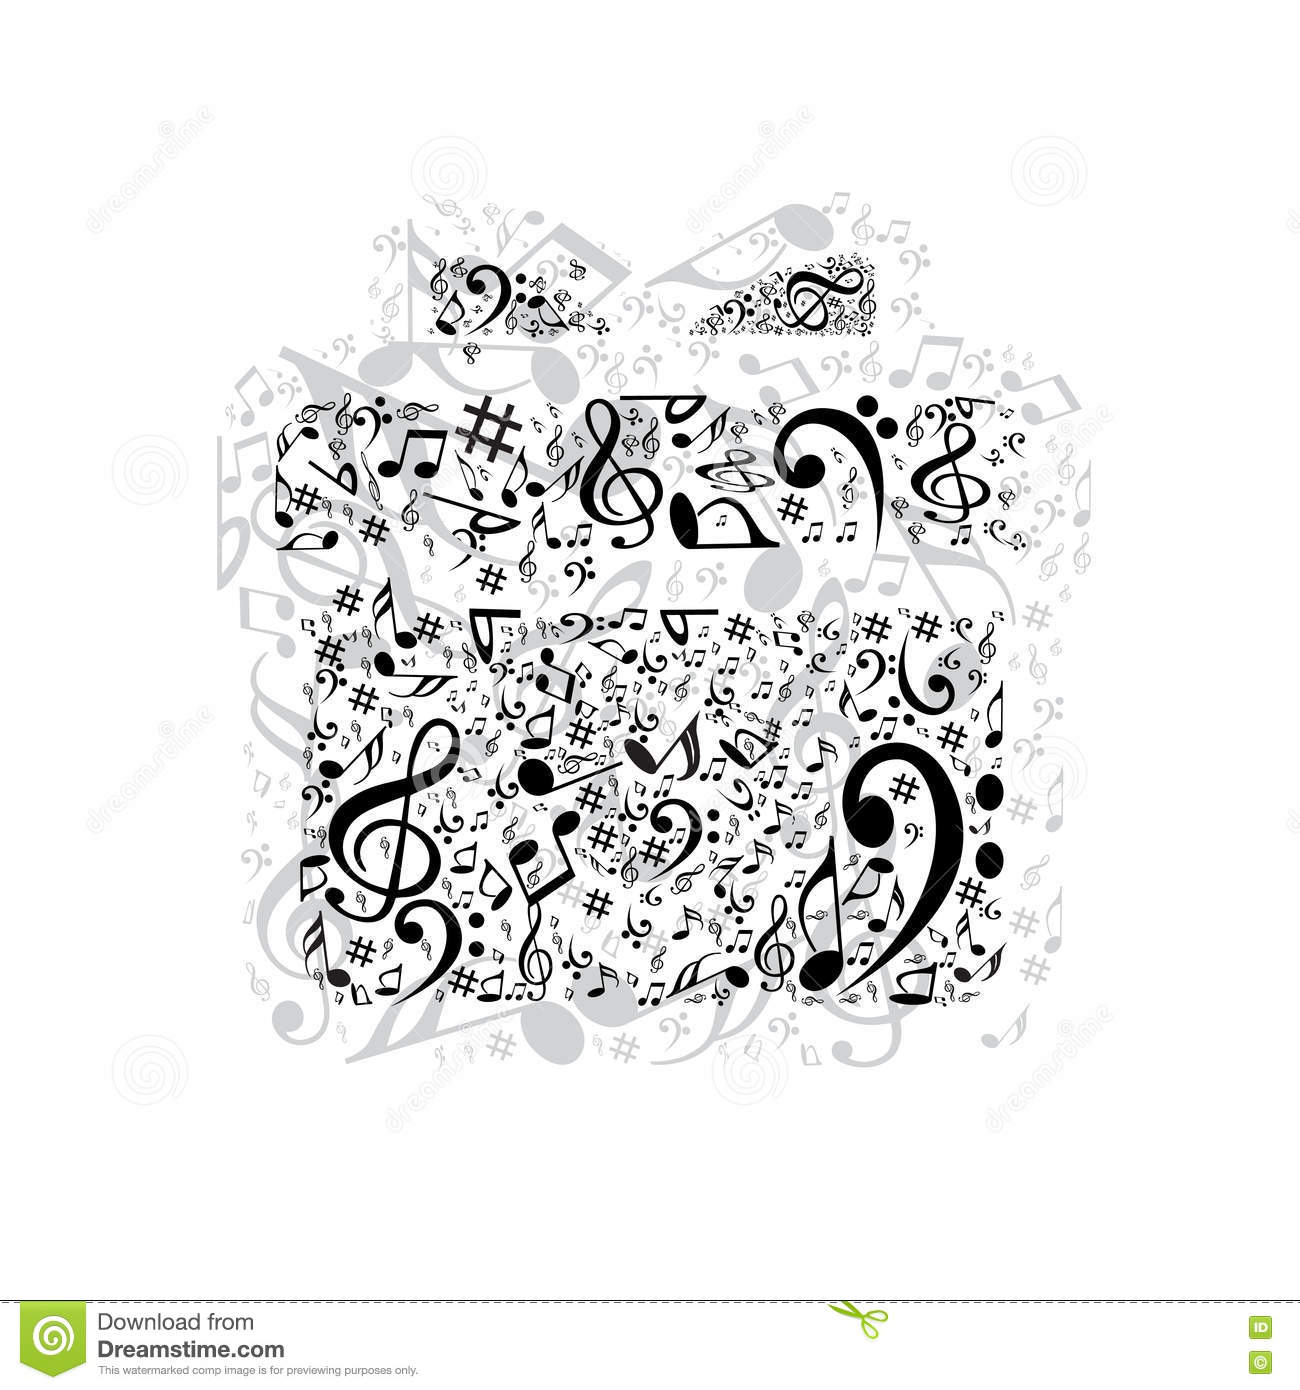 Present stock vector. Image of background, liens, icon